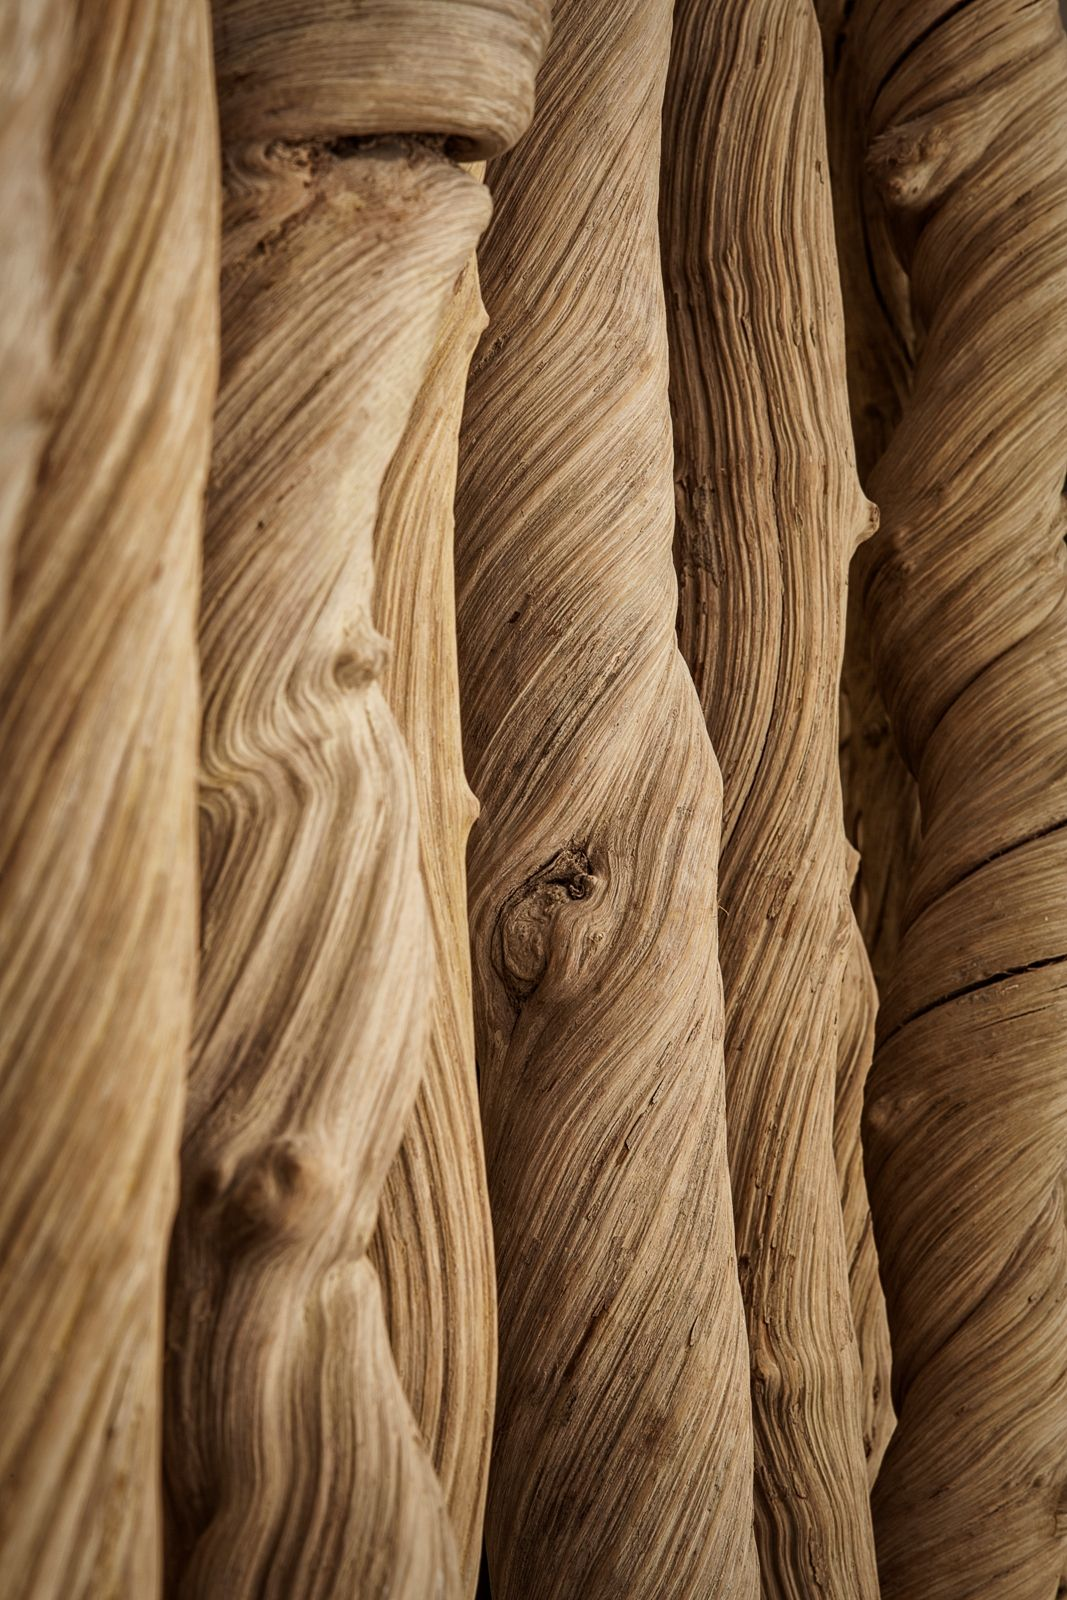 Close up to wooden texture